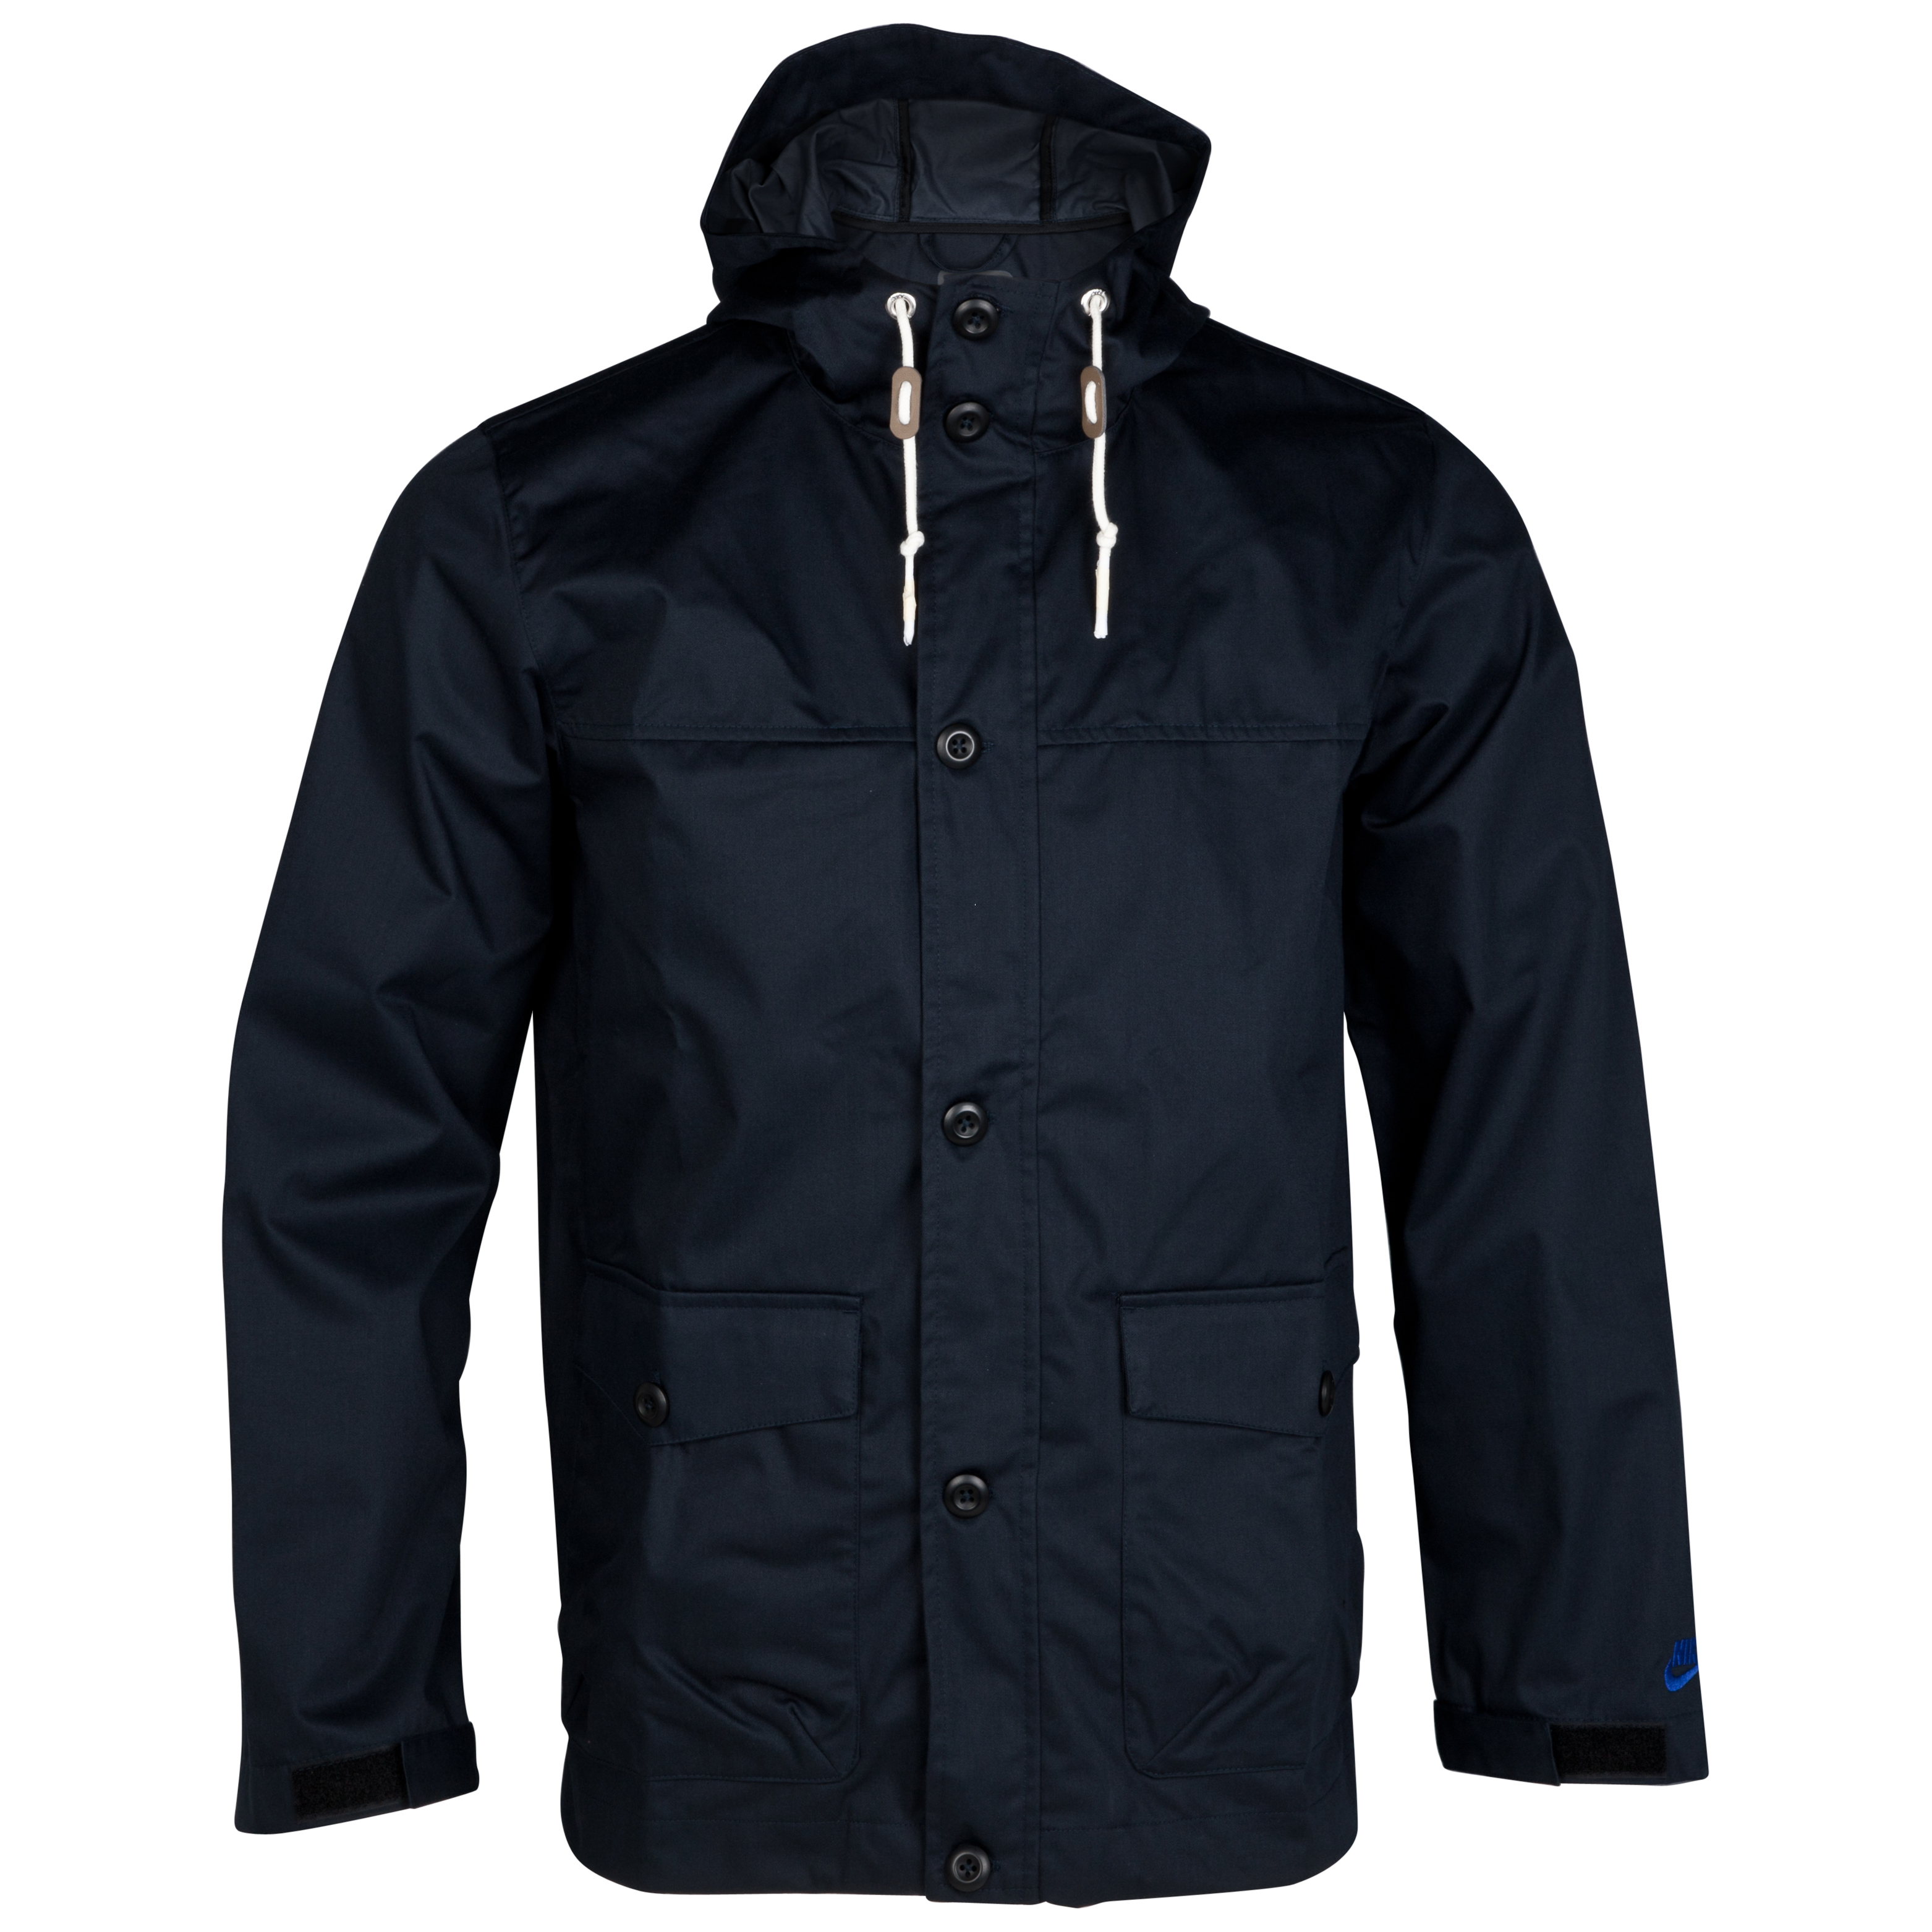 Nike GF Woven Saturday Jacket - Black/Game Royal